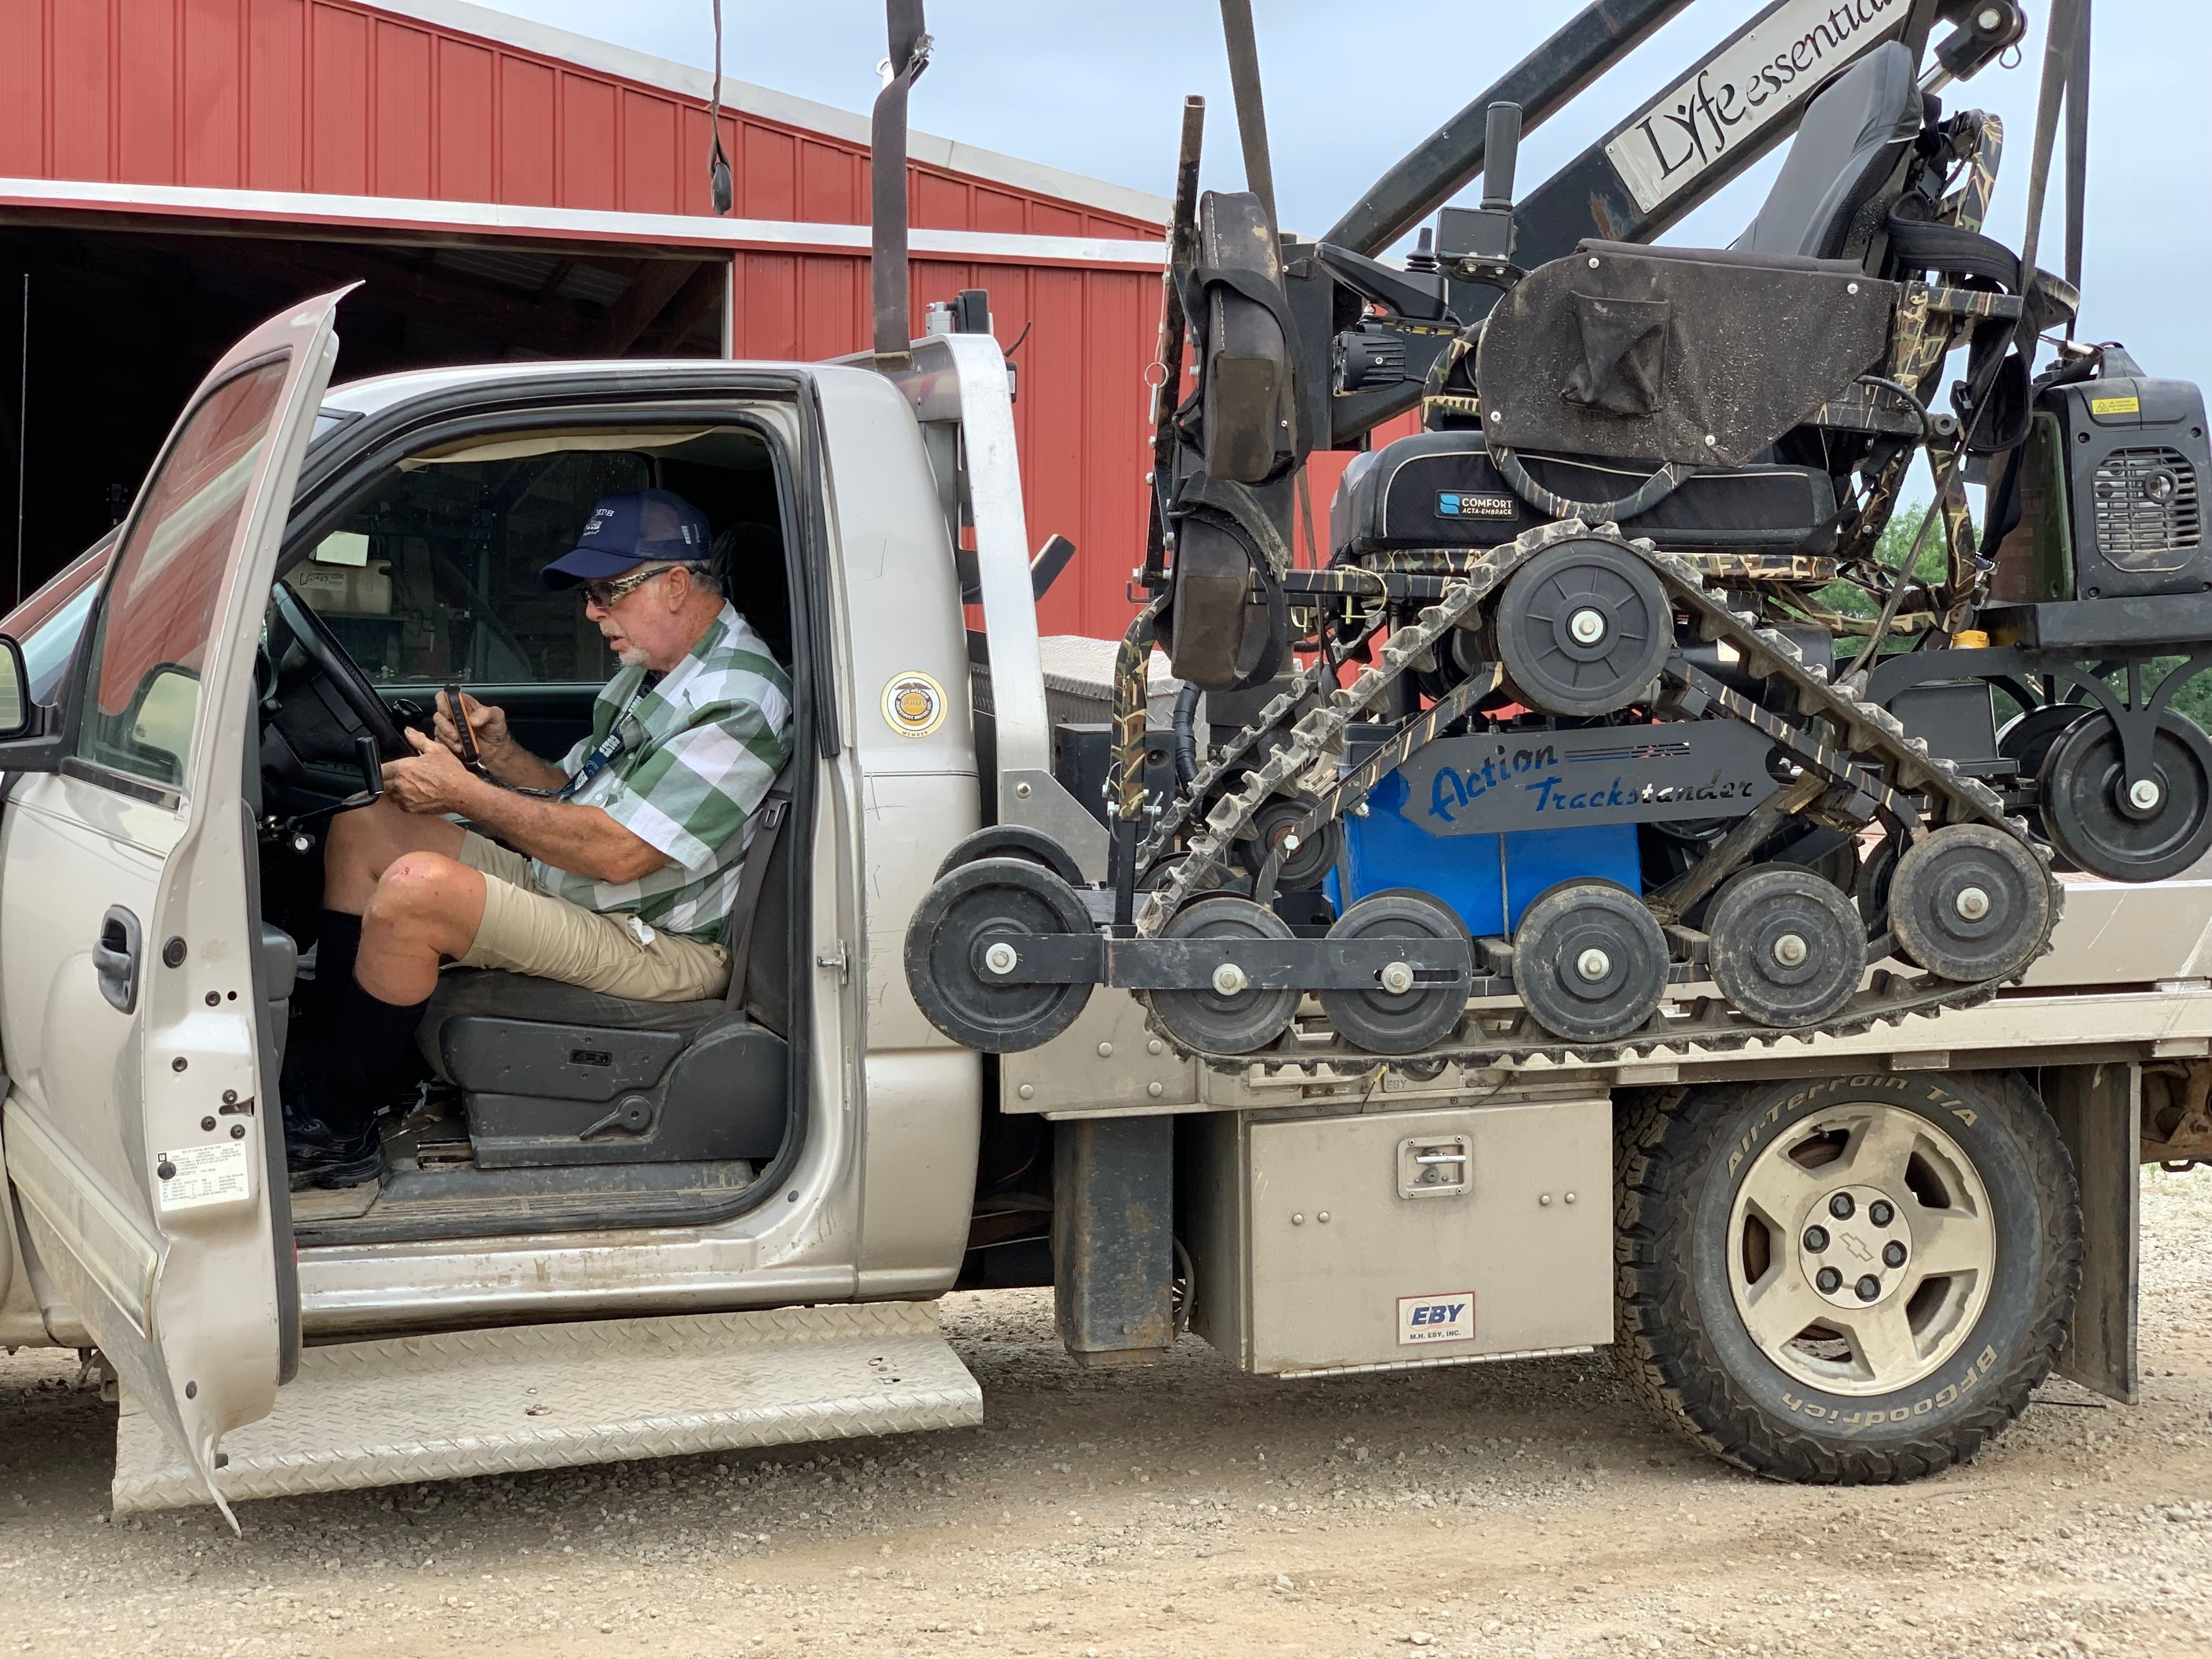 In this July 10, 2019, photo, farmer Mark Hosier, 58, works on his farm in Alexandria, Ind. Hosier was injured in 2006, when a 2000-pound bale of hay fell on him while he was working. Assistive technology, help from seasonal hires and family members, and a general improvement in the health of U.S. seniors in recent decades have helped farmers remain productive and stay on the job well into their 60s, 70s and beyond. (Andrew Soregel via AP)